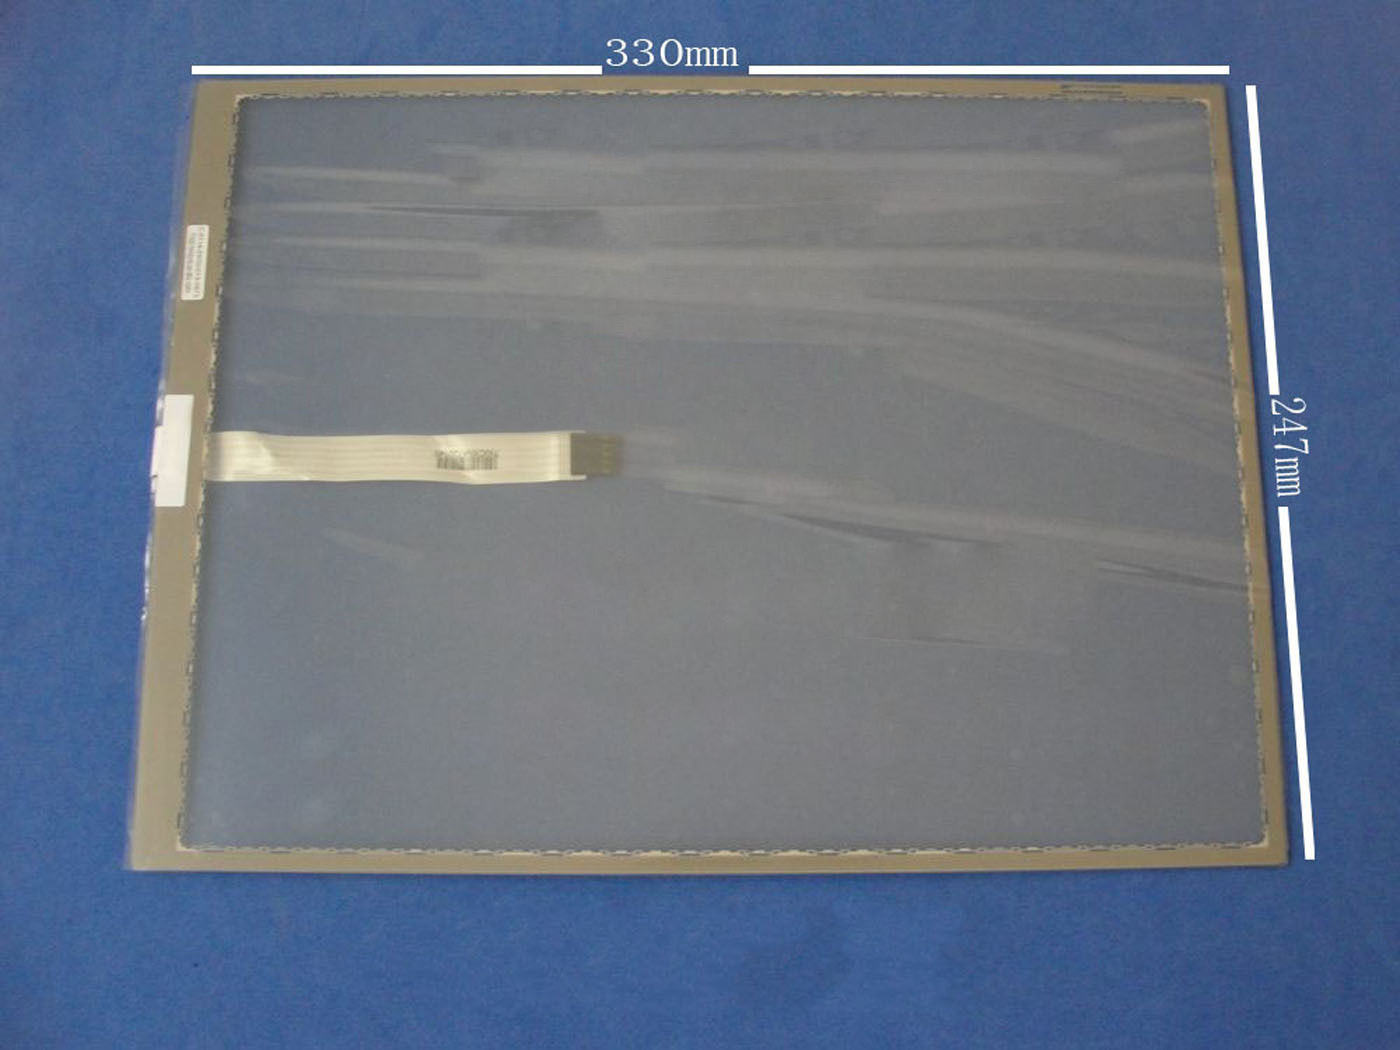 15 inch HIGGSTEC 5 wire industrial Touch Screen Glass Panel Digitizer T150S-5RAB01N-0A18R0-150FH